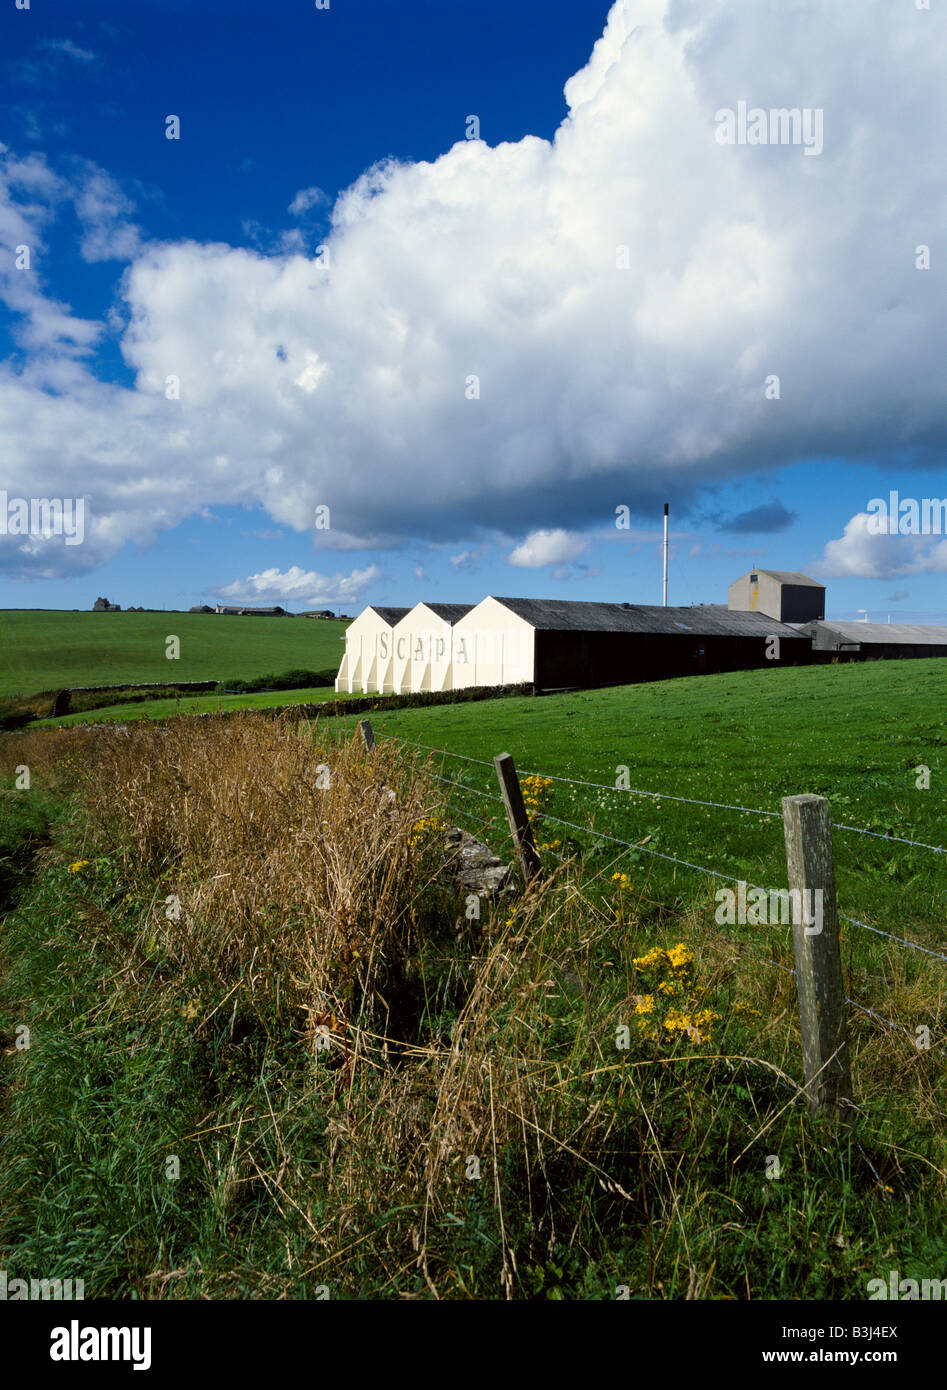 dh Allied Distillers SCAPA DISTILLERY ORKNEY Fence fields Lingro farm  Distillery whisky scottish countryside scotland Stock Photo